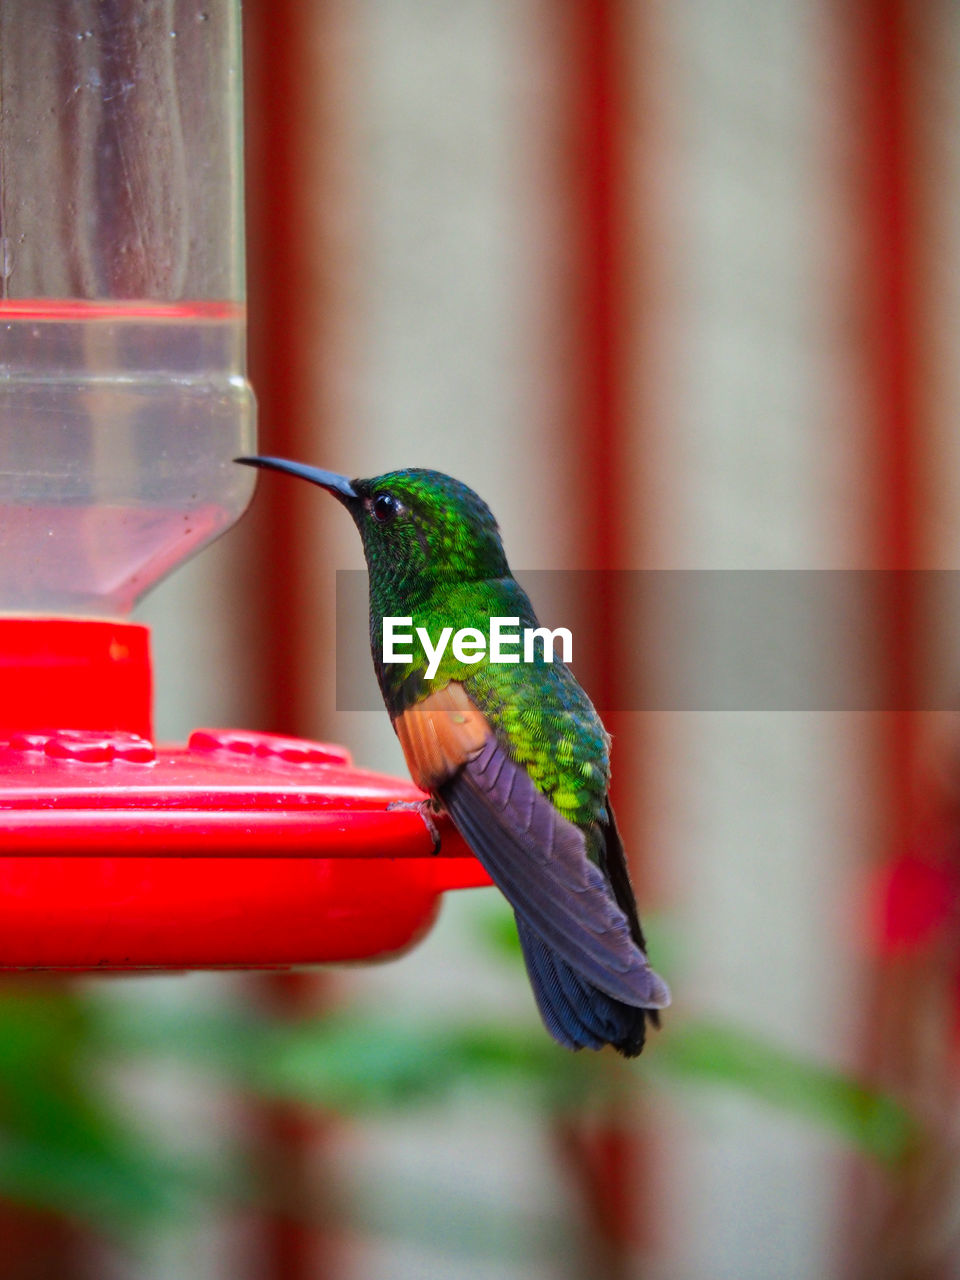 bird, vertebrate, hummingbird, animal themes, animals in the wild, animal, animal wildlife, one animal, red, focus on foreground, bird feeder, perching, close-up, day, no people, full length, green color, side view, beak, outdoors